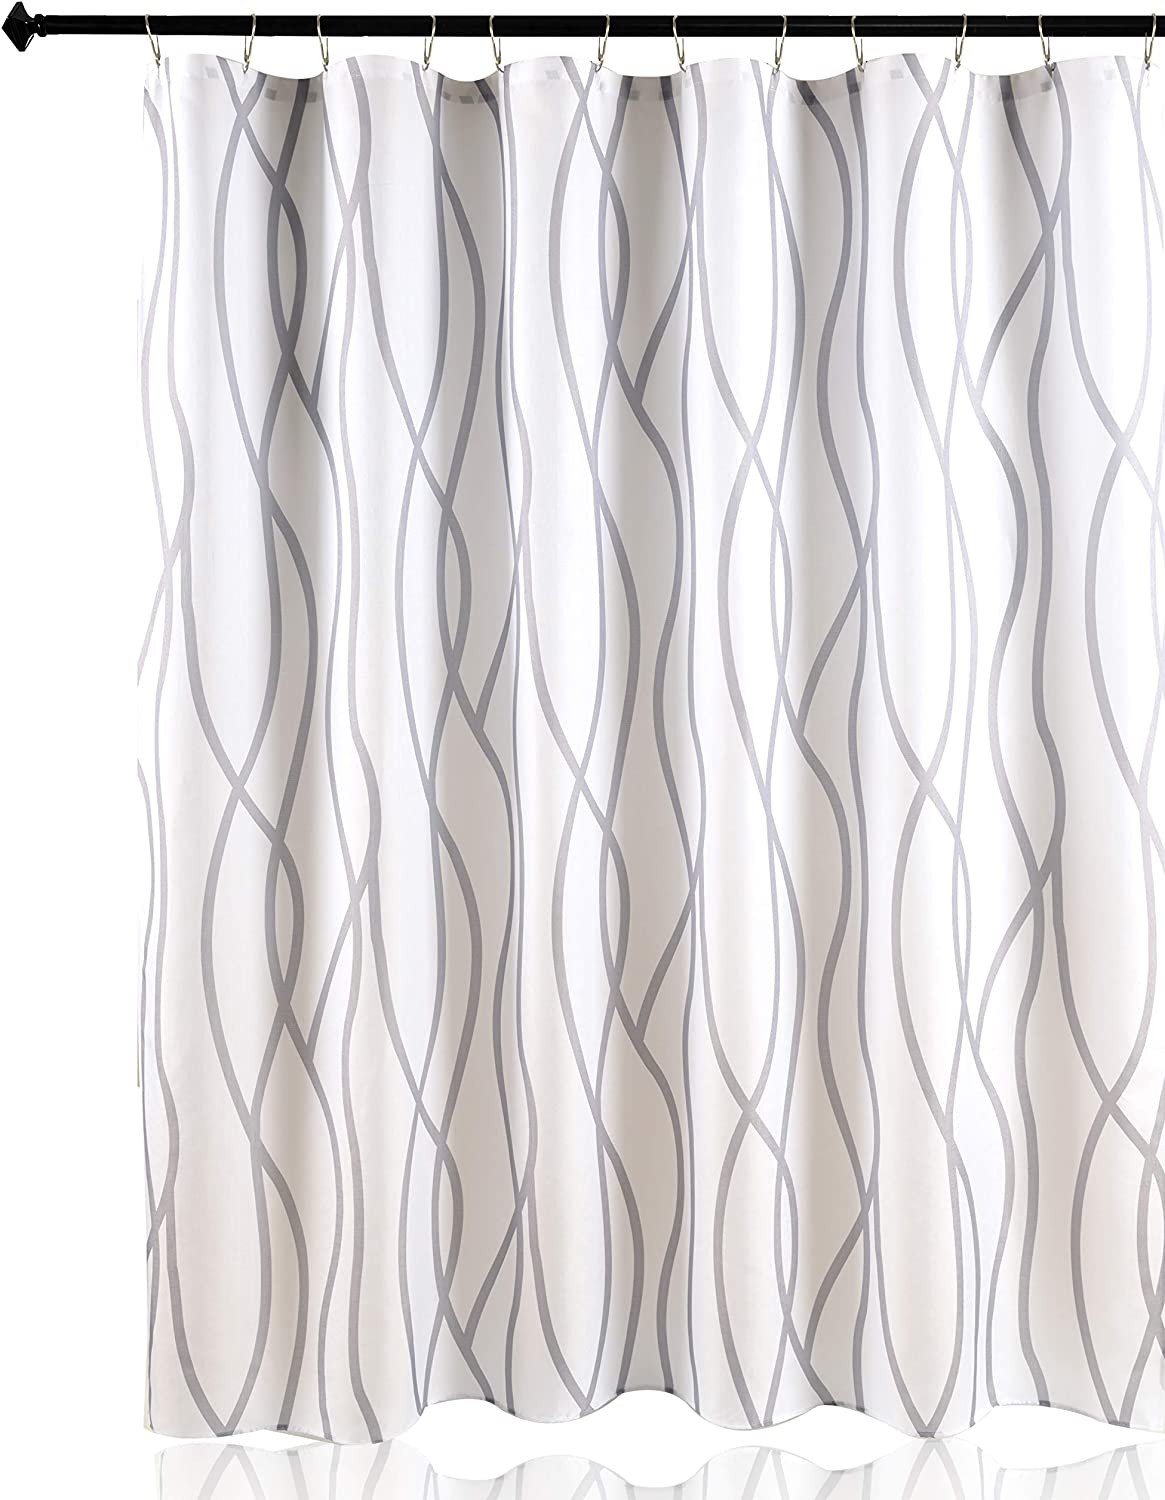 Biscaynebay Textured Fabric Shower Curtain Printed Dancing Bathroom Curtains, Silver Grey 72 Inches by 72 Inches